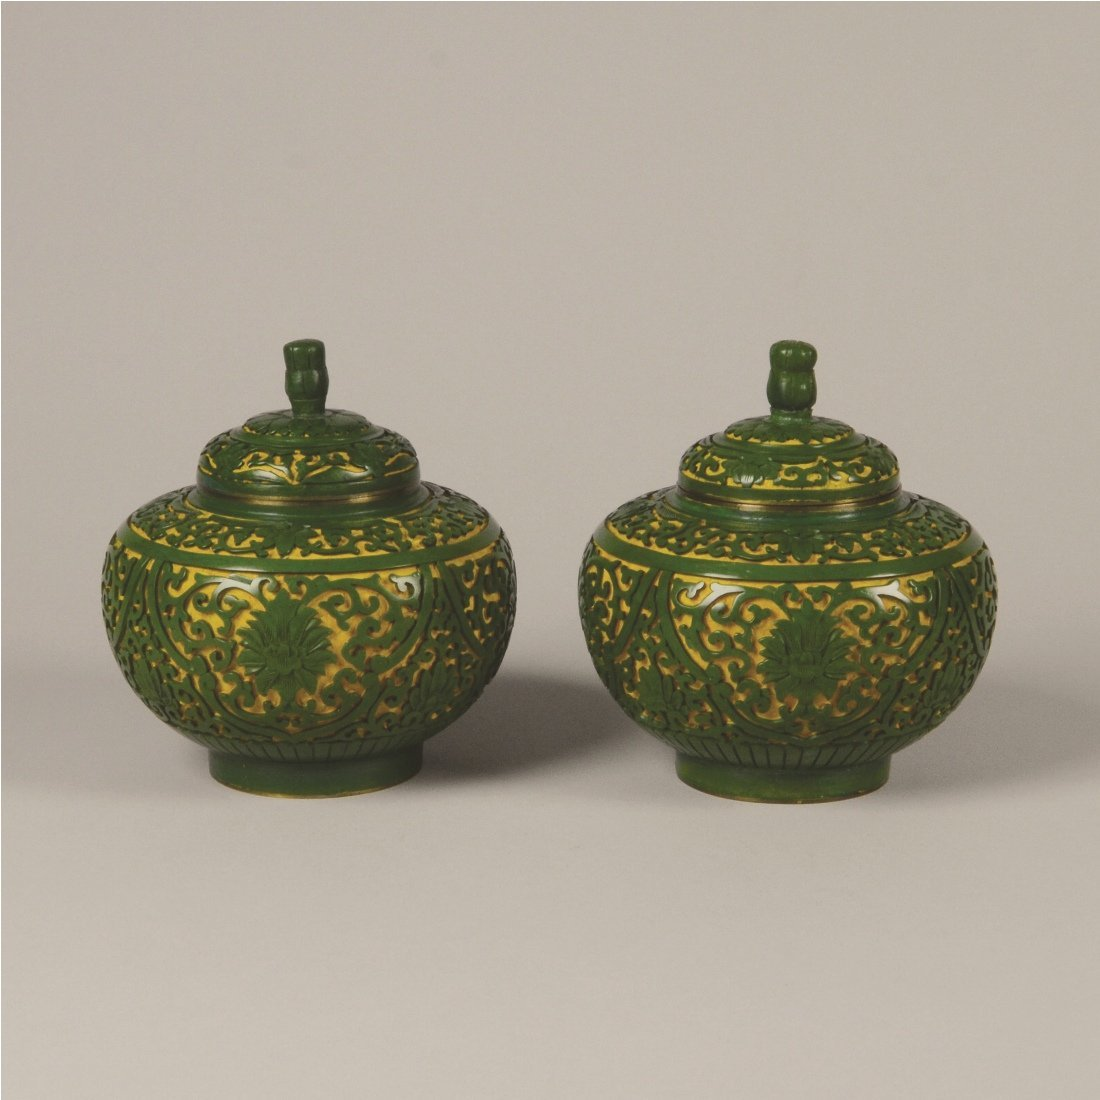 3: PAIR OF CARVED GREEN CINNABAR LACQUER JARS